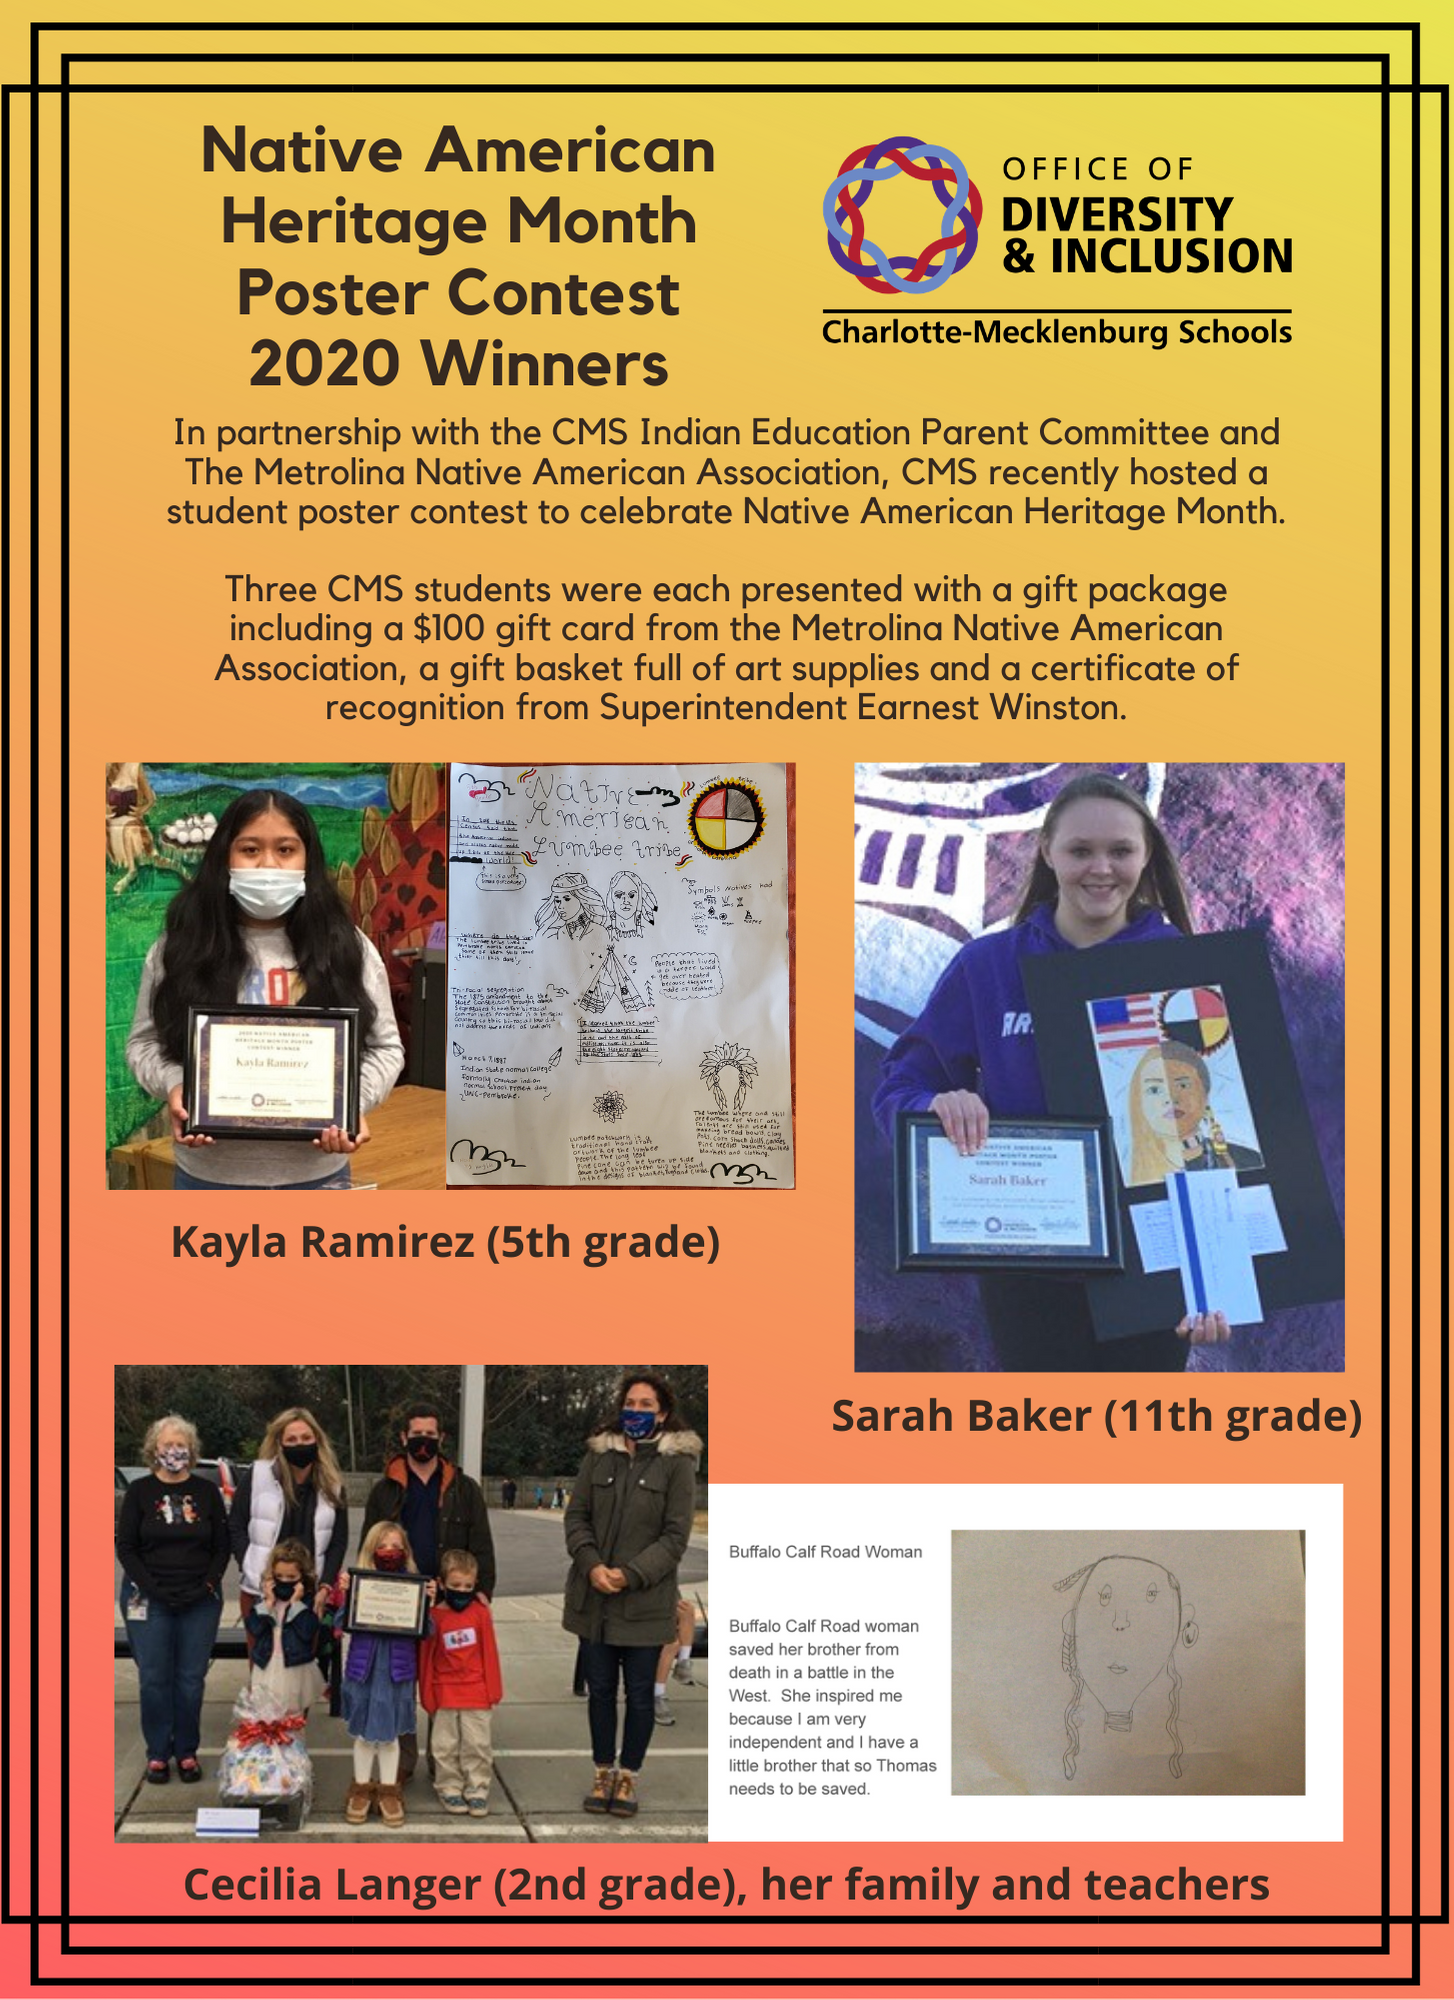 Native American Heritage Month Poster Contest Winners (1).png